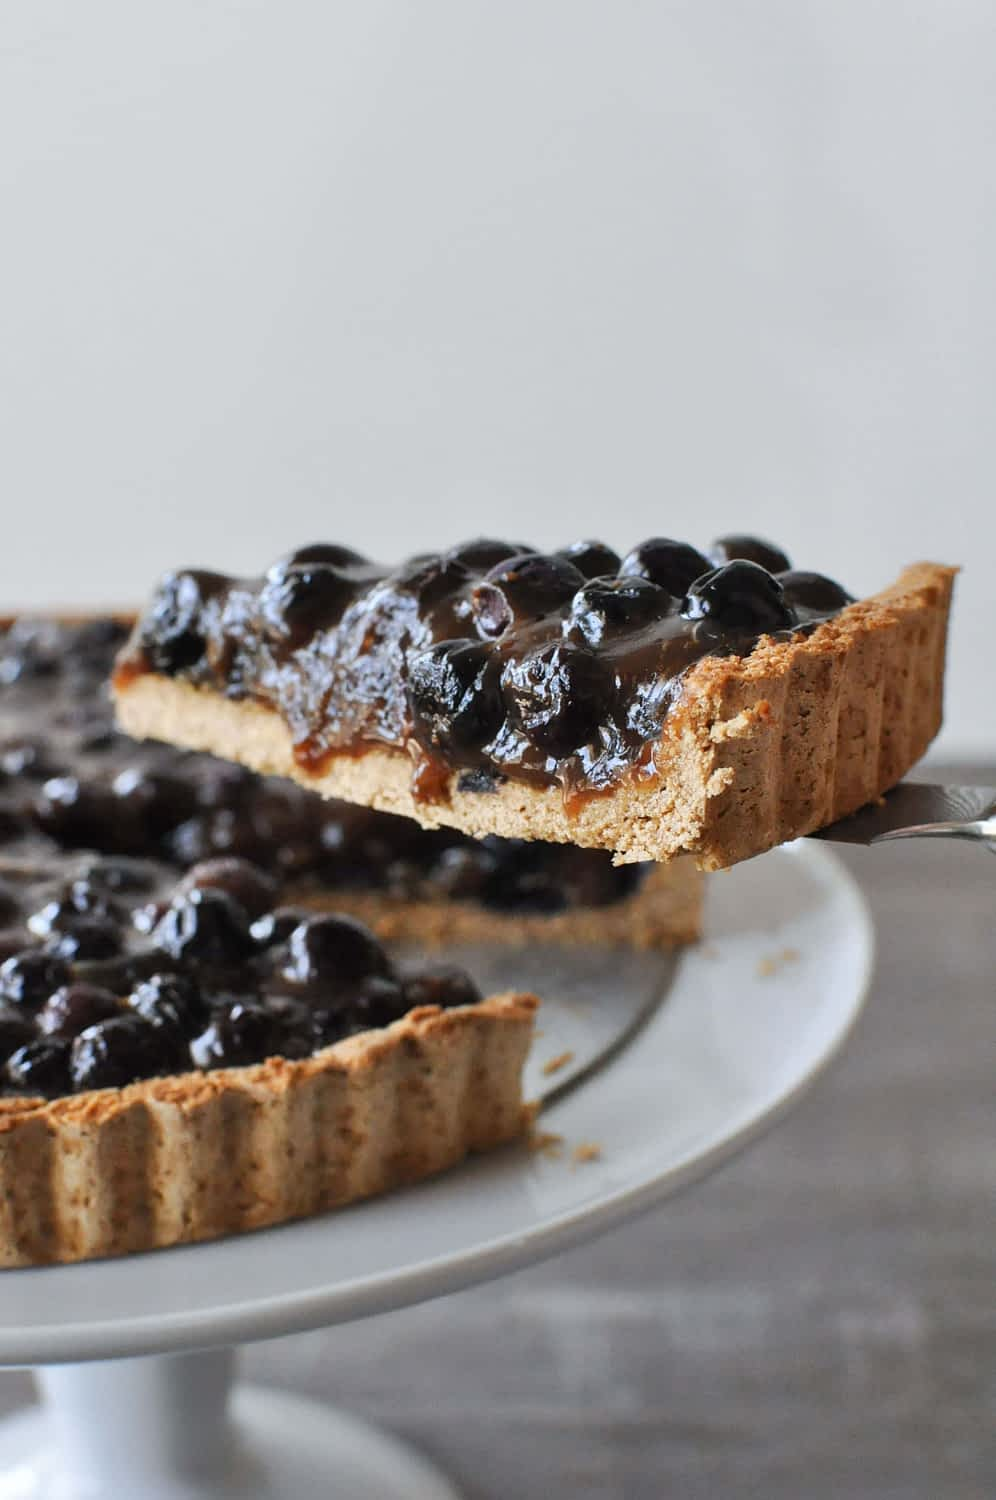 a slice of blueberry tart being lifted from a plate of blueberry tart with a pie cutter